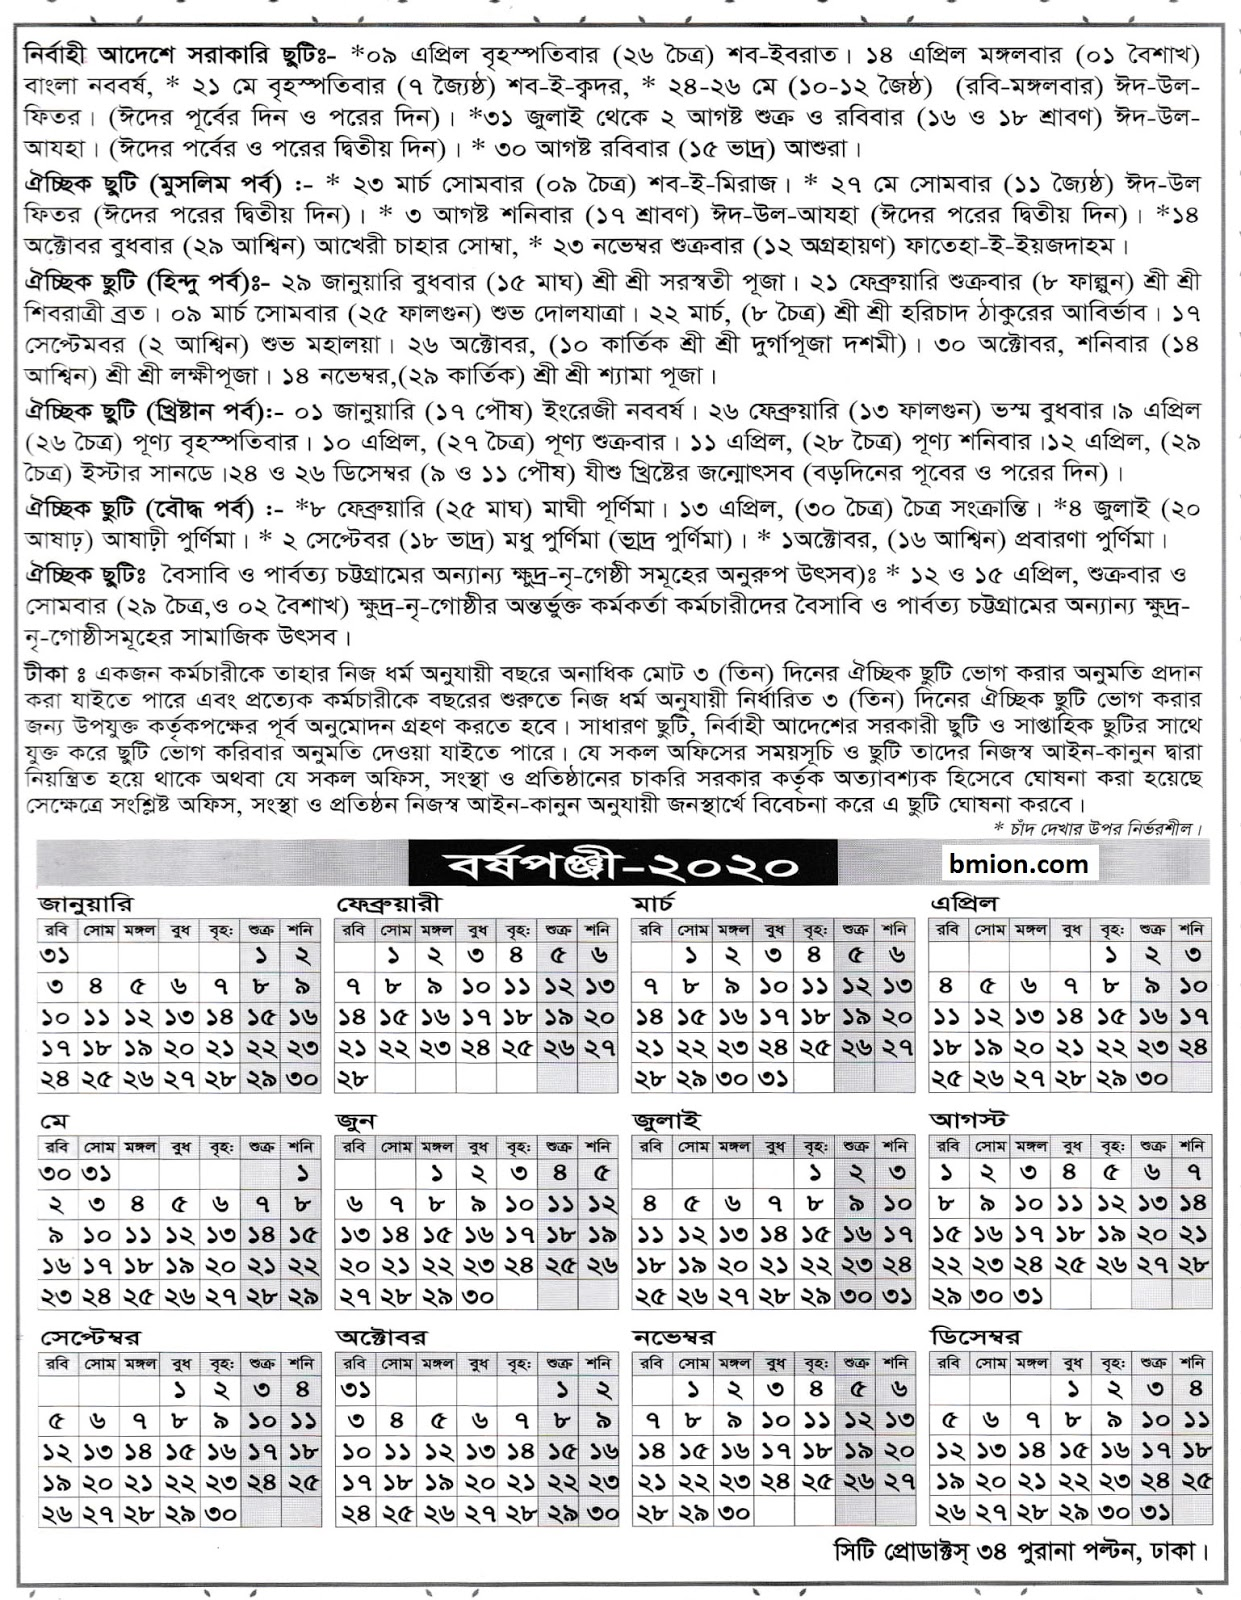 Bangladesh-Public-Government-Holidays-2020-Bangla-Calender-2020